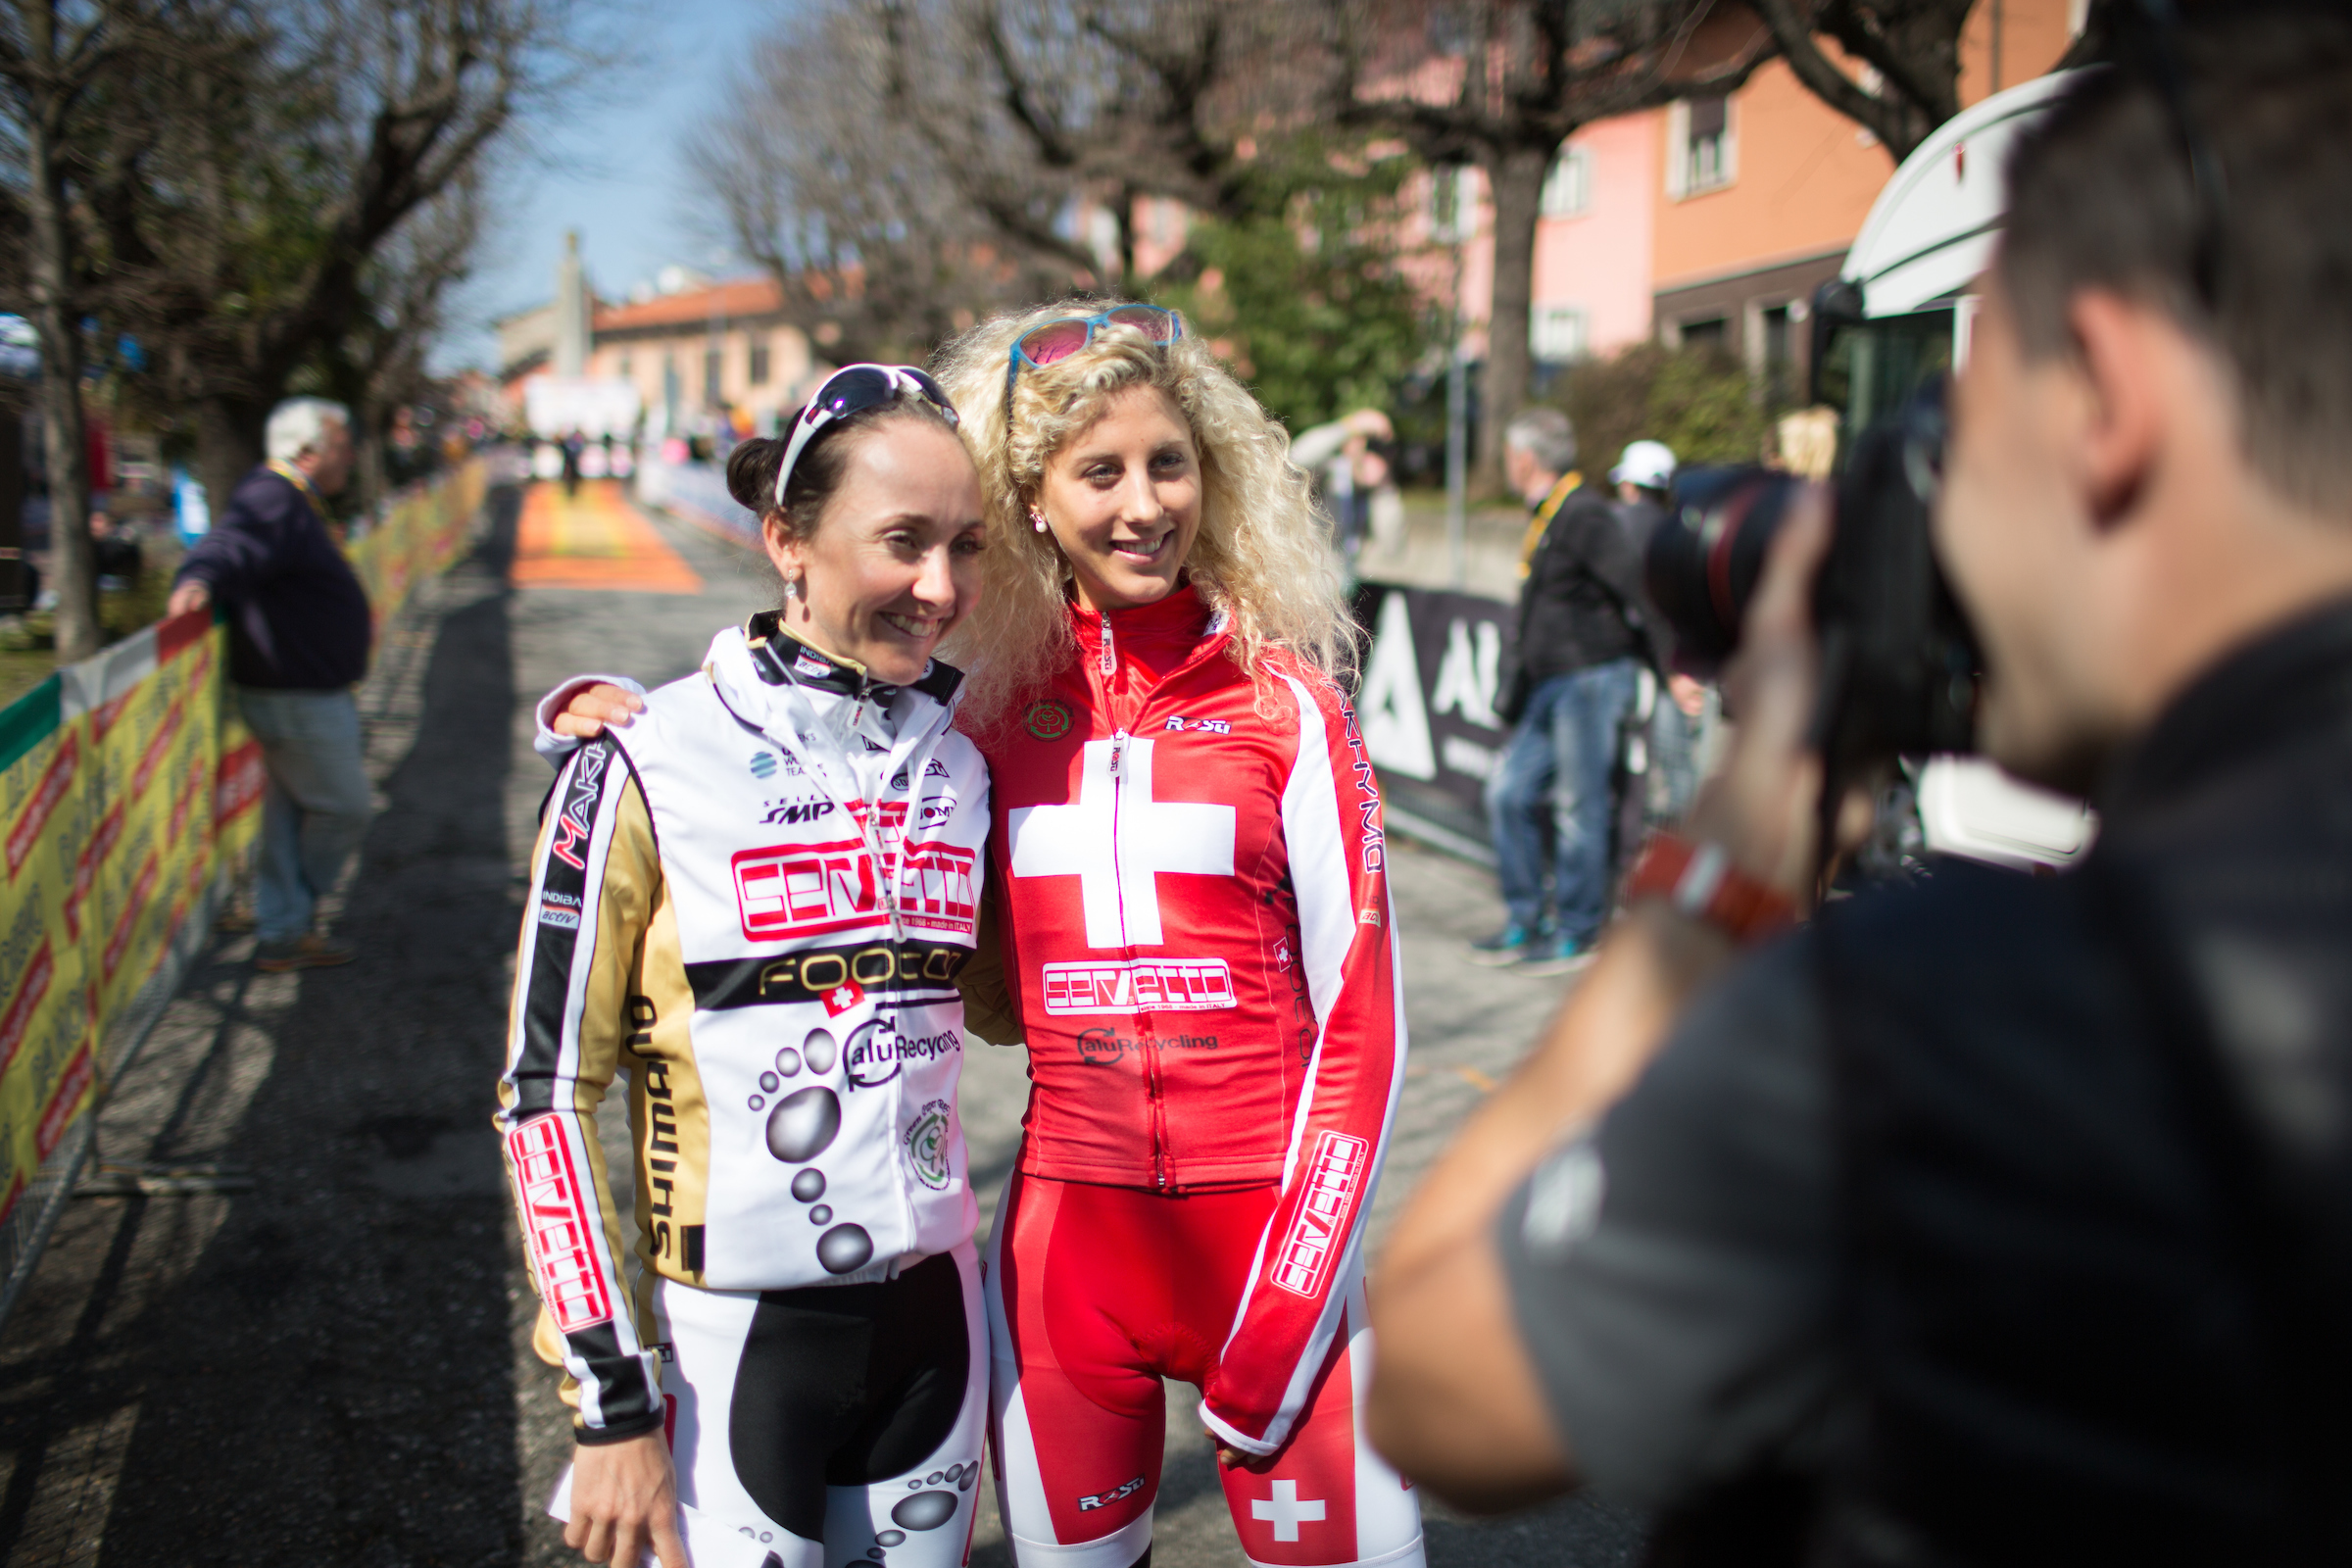 Eva Lechner and Jolanda Neff (both Servetto Footon Cycling Team) pose for a photograph before the start of Trofeo Alfredo Binda - a 123.3km road race from Gavirate to Cittiglio on March 20, 2016 in Varese, Italy.